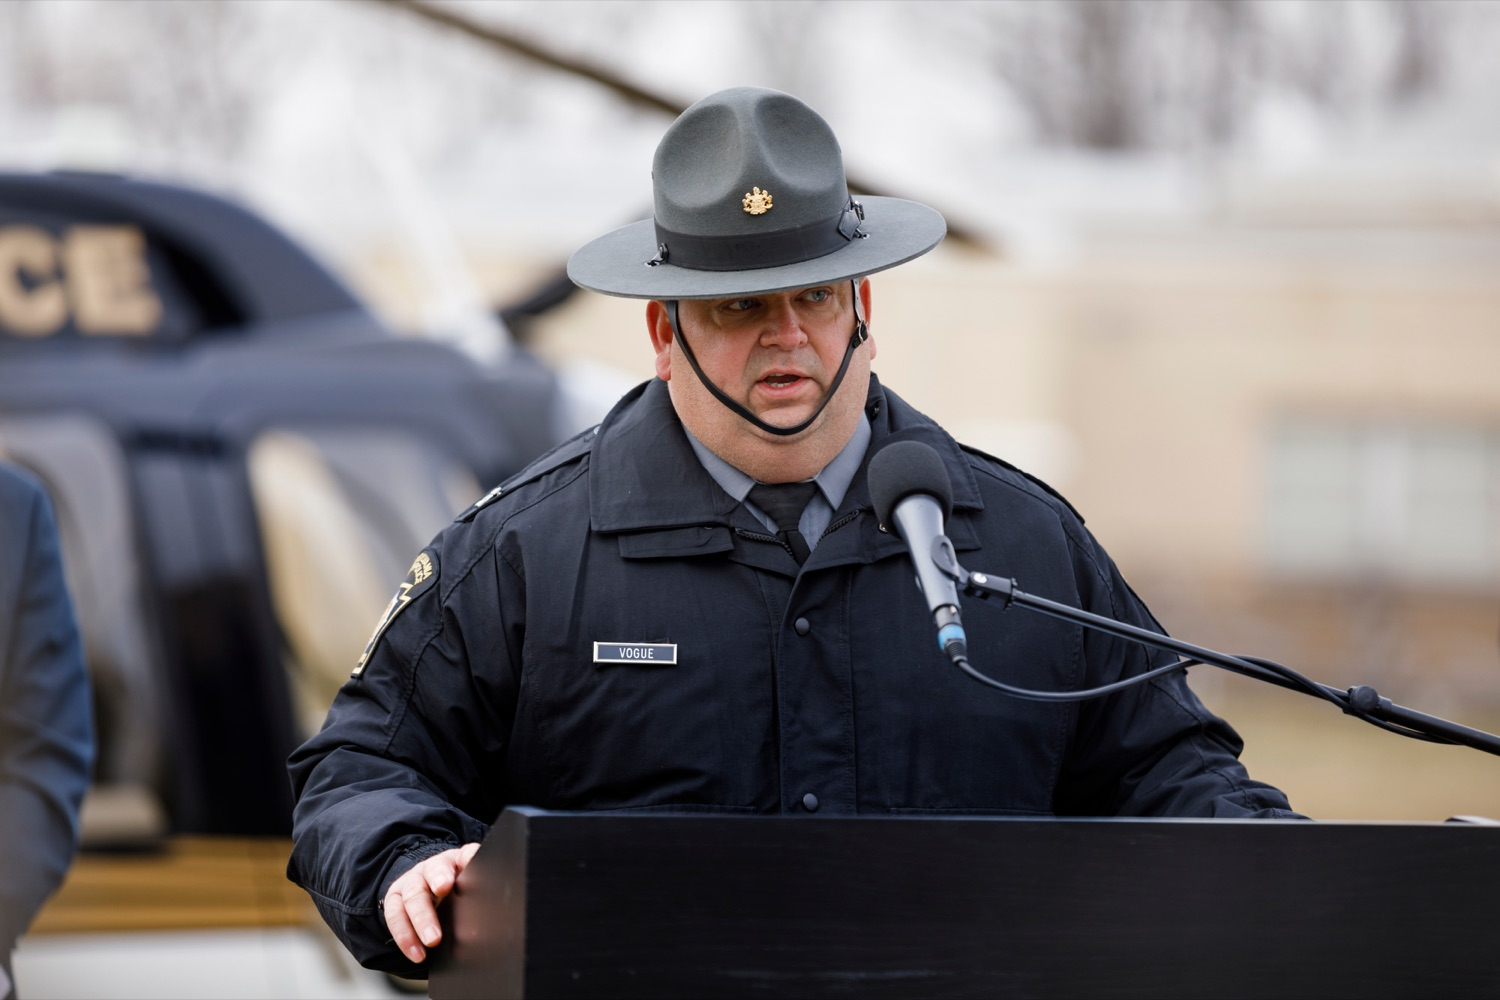 "<a href=""https://filesource.wostreaming.net/commonwealthofpa/photo/17706_DOH_Drone_Safety_NK_013.JPG"" target=""_blank"">⇣ Download Photo<br></a>Pennsylvania State Police Capt. Gary Vogue, director of the Special Service Division of the Pennsylvania State Police Bureau of Emergency and Special Operations, speaks during a press conference, which highlighted the danger drones pose to helicopters in emergency situations, at the Pennsylvania State Police Academy in Hershey on Friday, January 31, 2020."